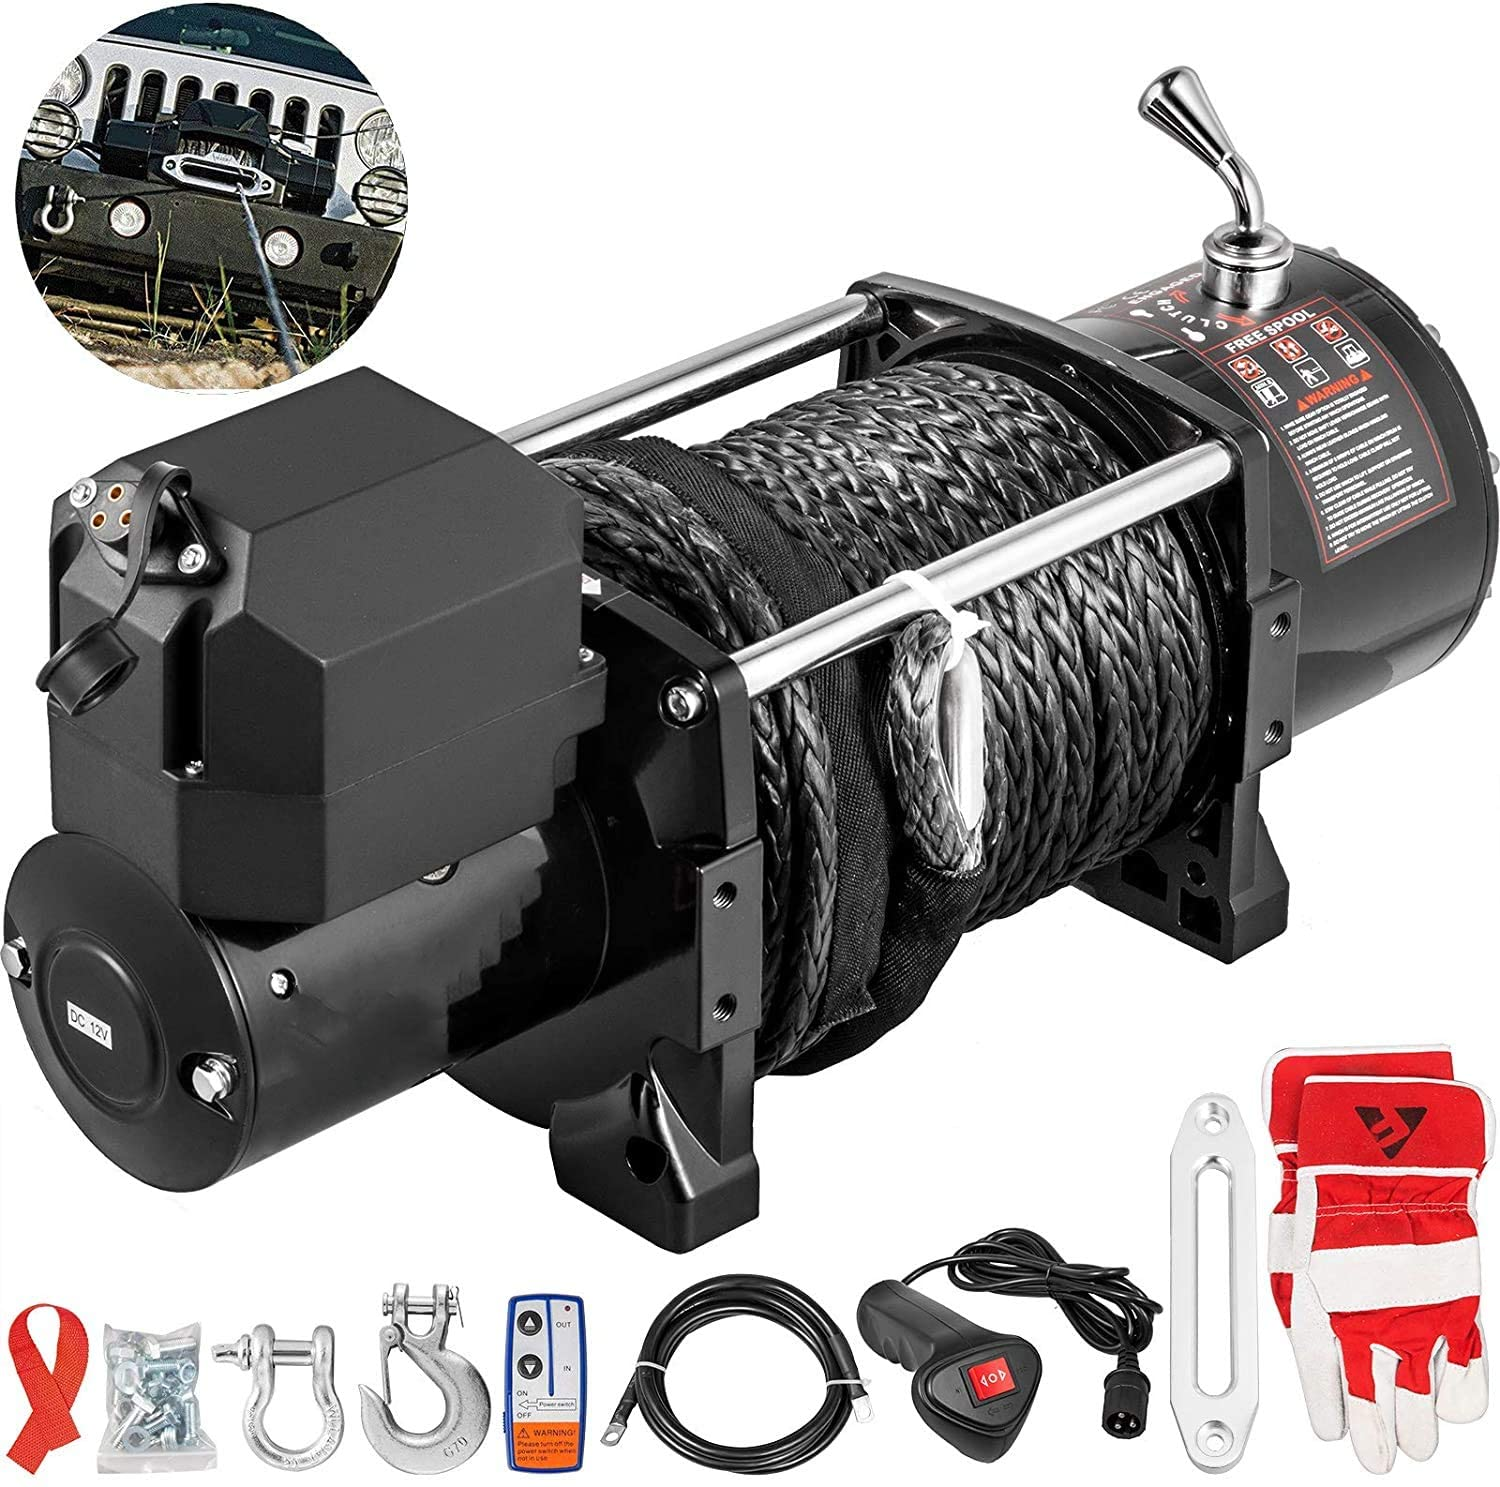 VEVOR Truck Winch 17500Ibs Electric Winch 85ft/26m Synthetic Rope Black 12V 6.6hp Power Winch Jeep Winch with Wireless Remote Control and Powerful Motor for UTV ATV & Jeep Truck Wrangler Accessories